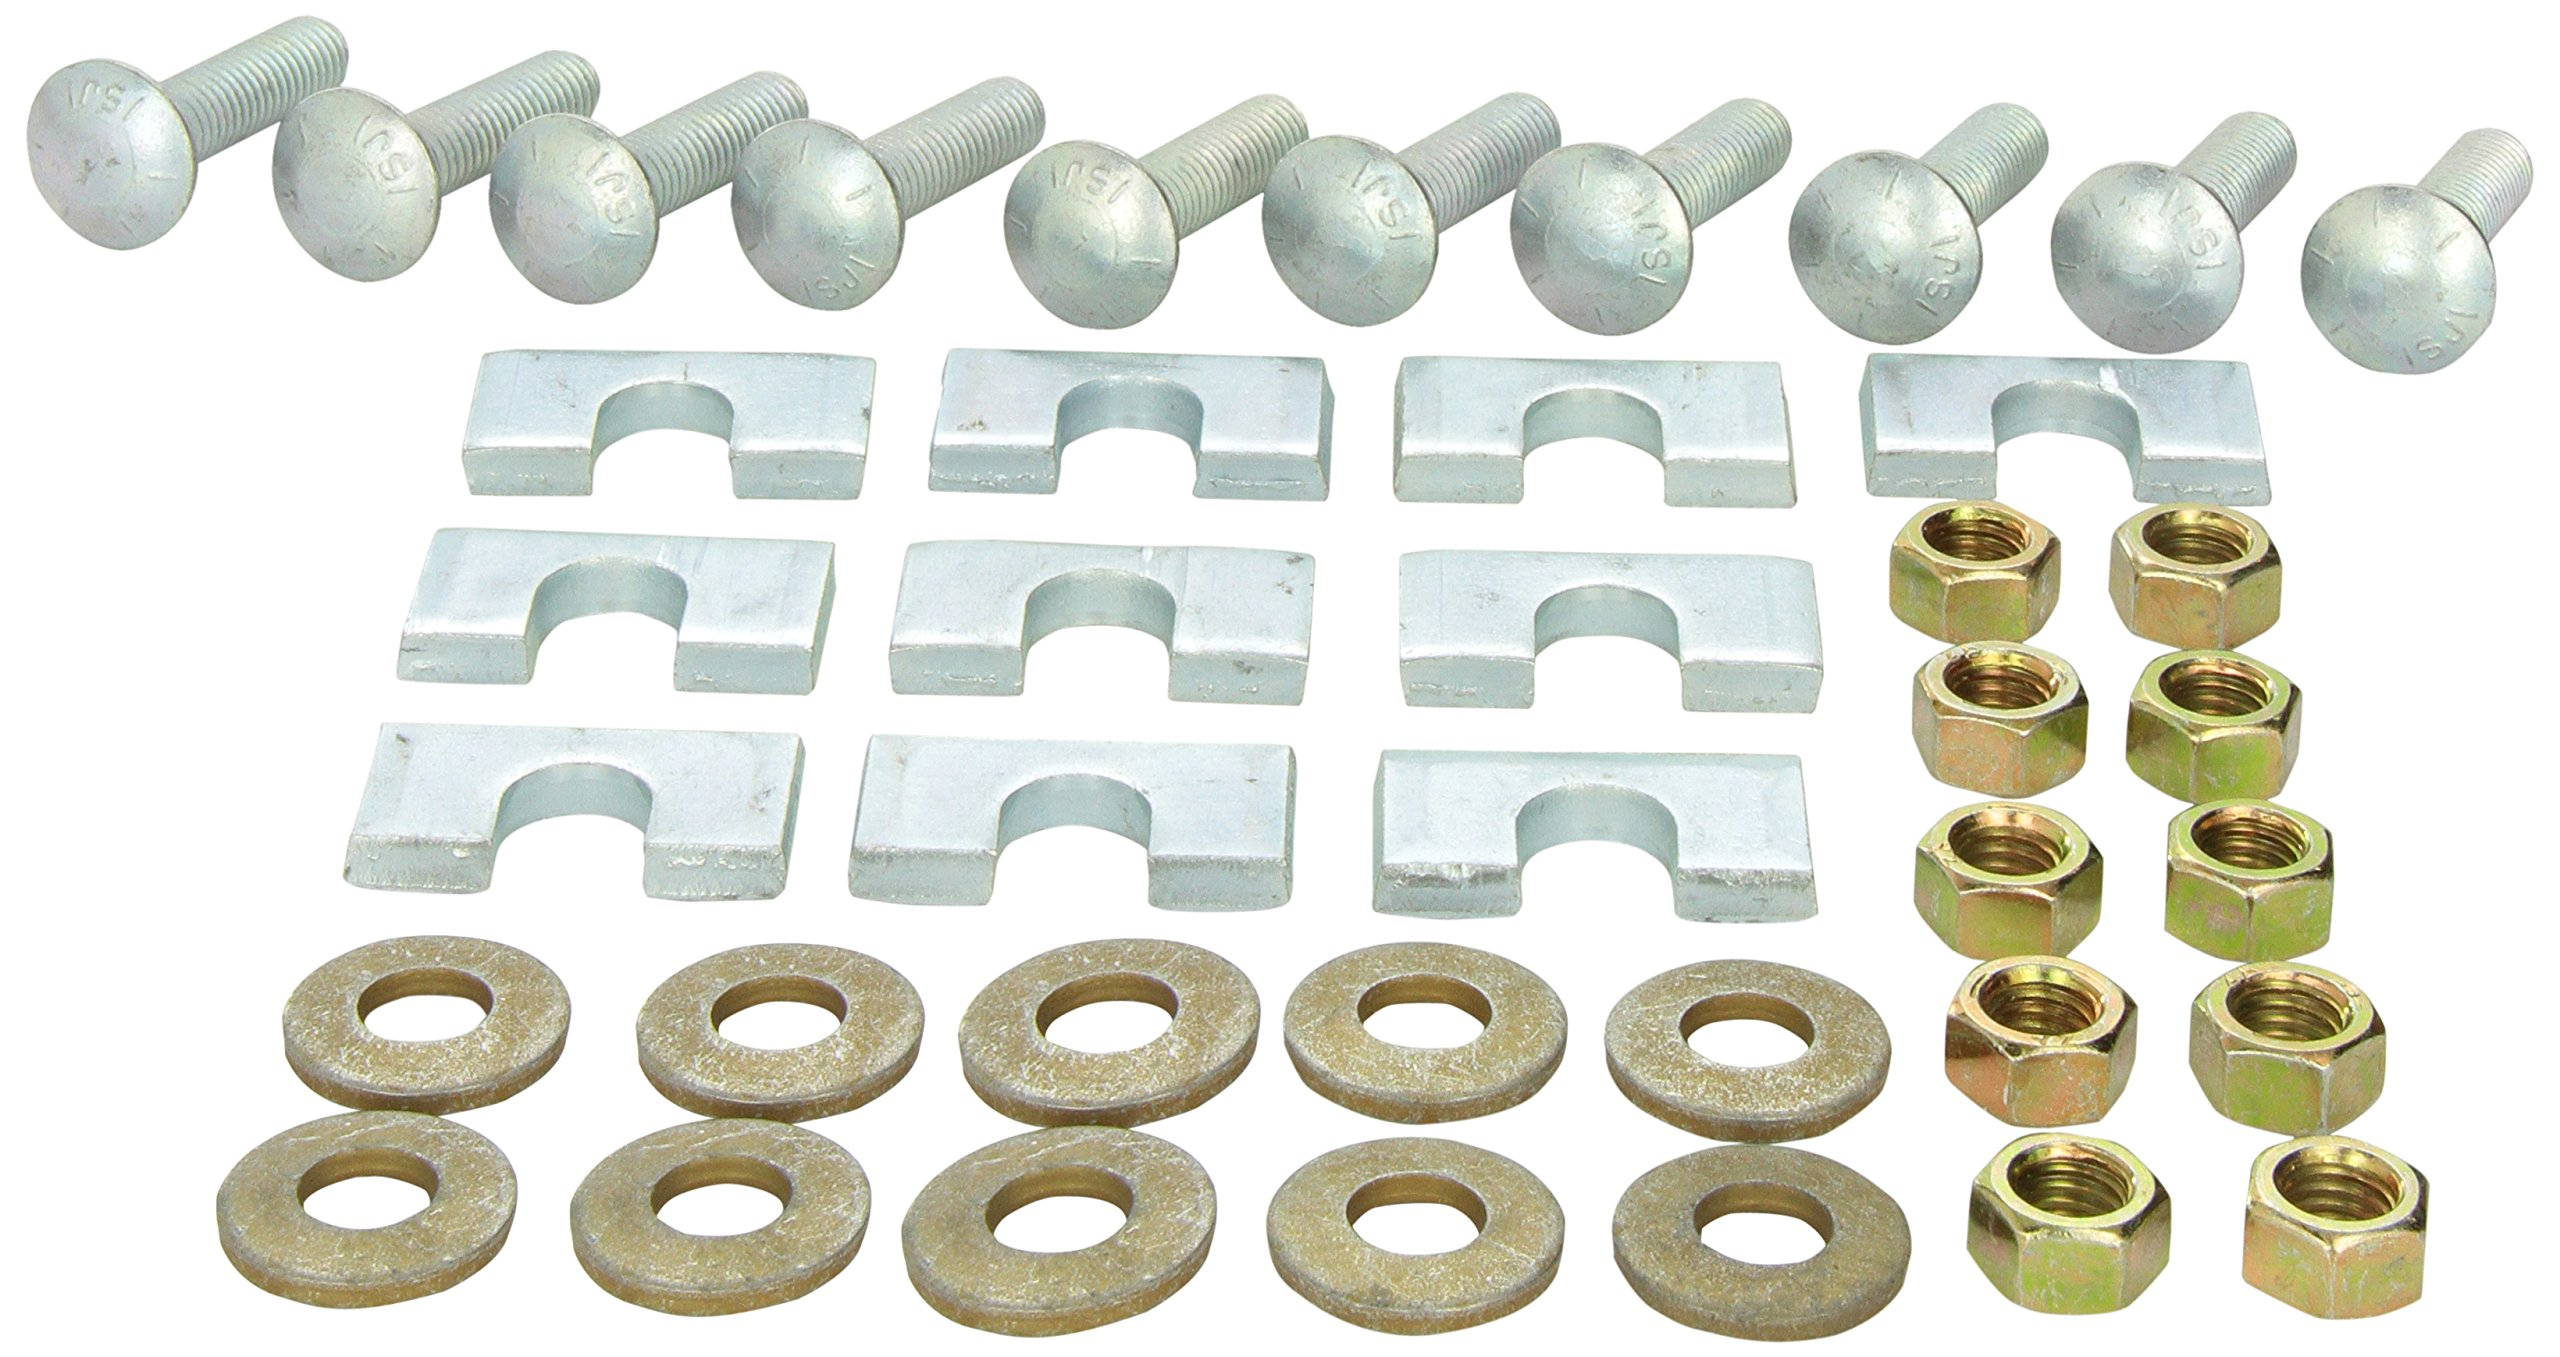 Reese Towpower 58504 Fifth Wheel Rail Mounting Hardware Kit by Reese Towpower